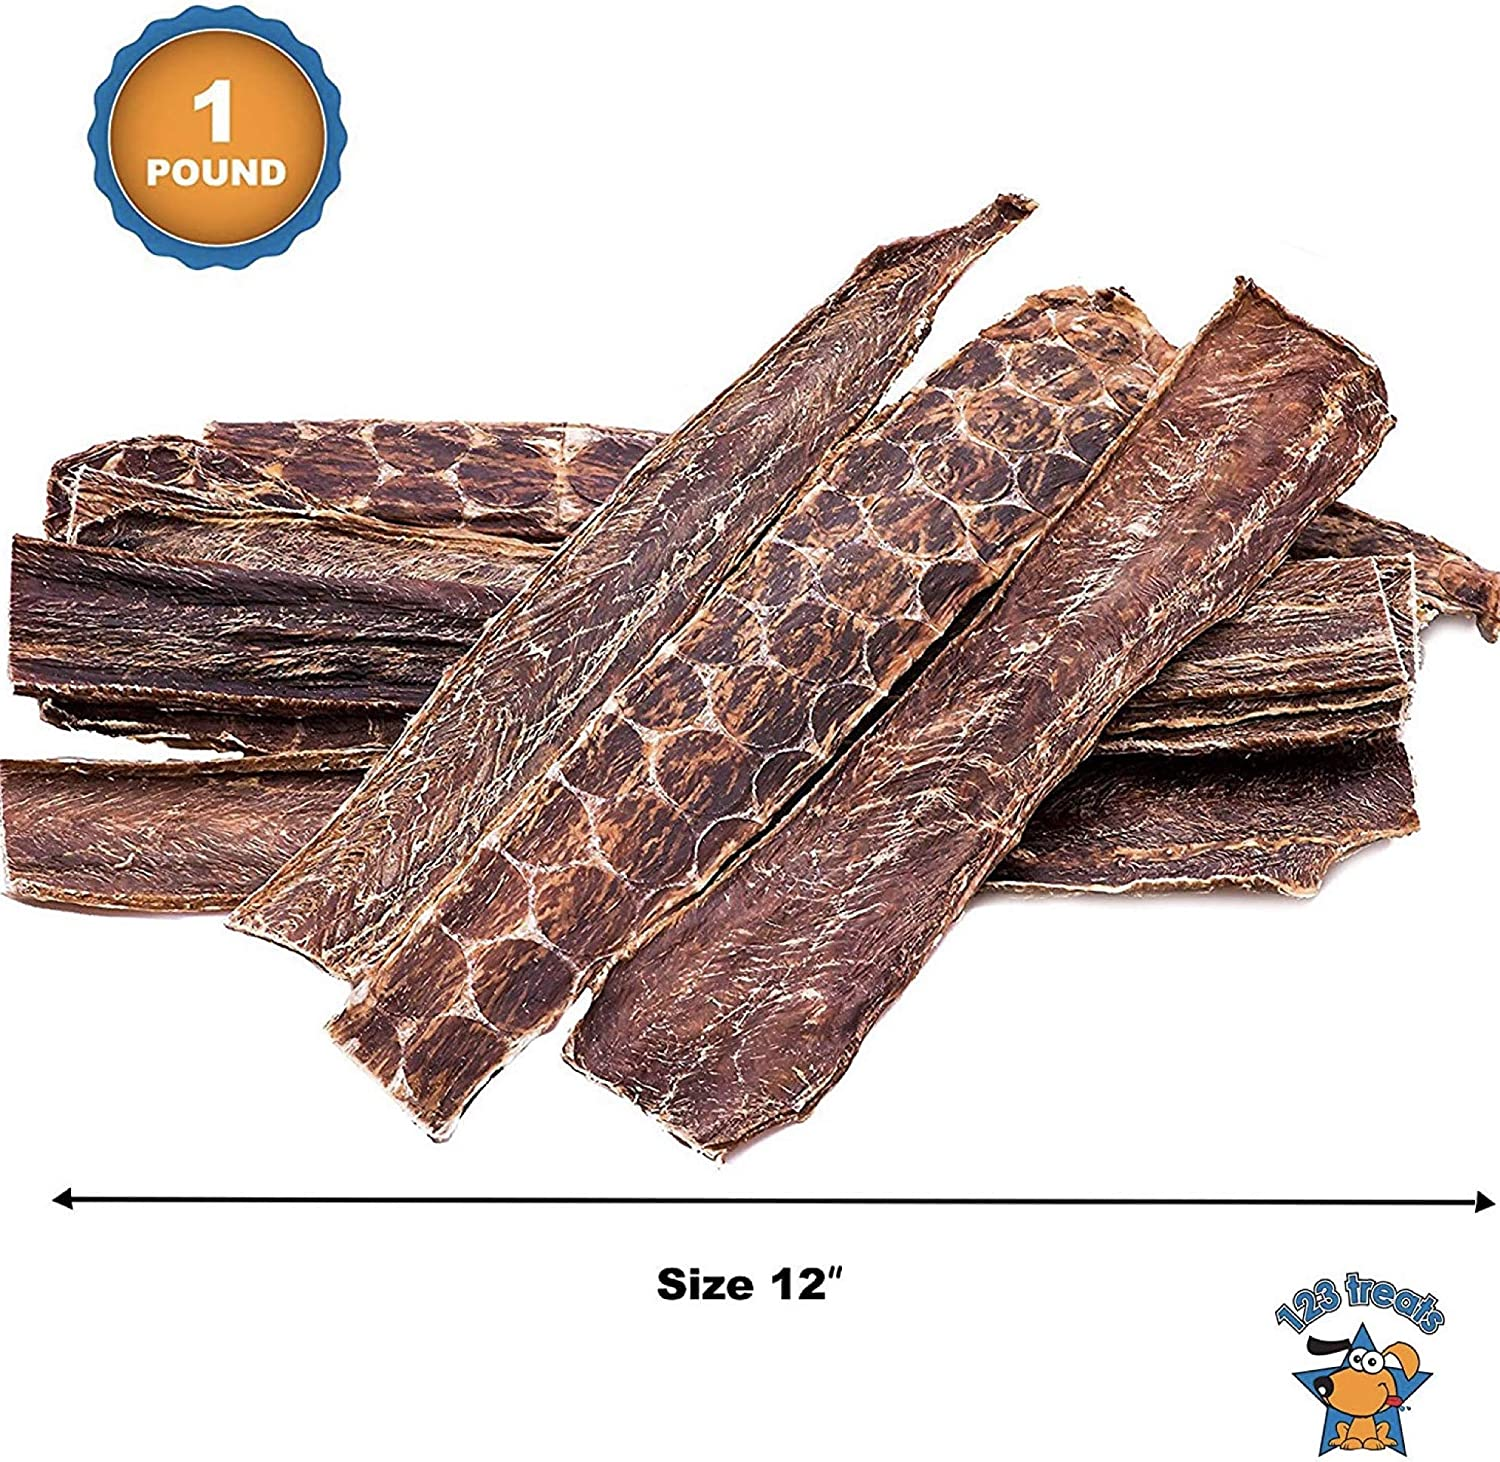 123 Treats – Beef Dog Treats Esophagus for Dogs 100 Natural Healthy Chews for Dogs – All Natural Jerky Meat Free of Preservatives, Hormones, Additives, Chemicals Antibiotics